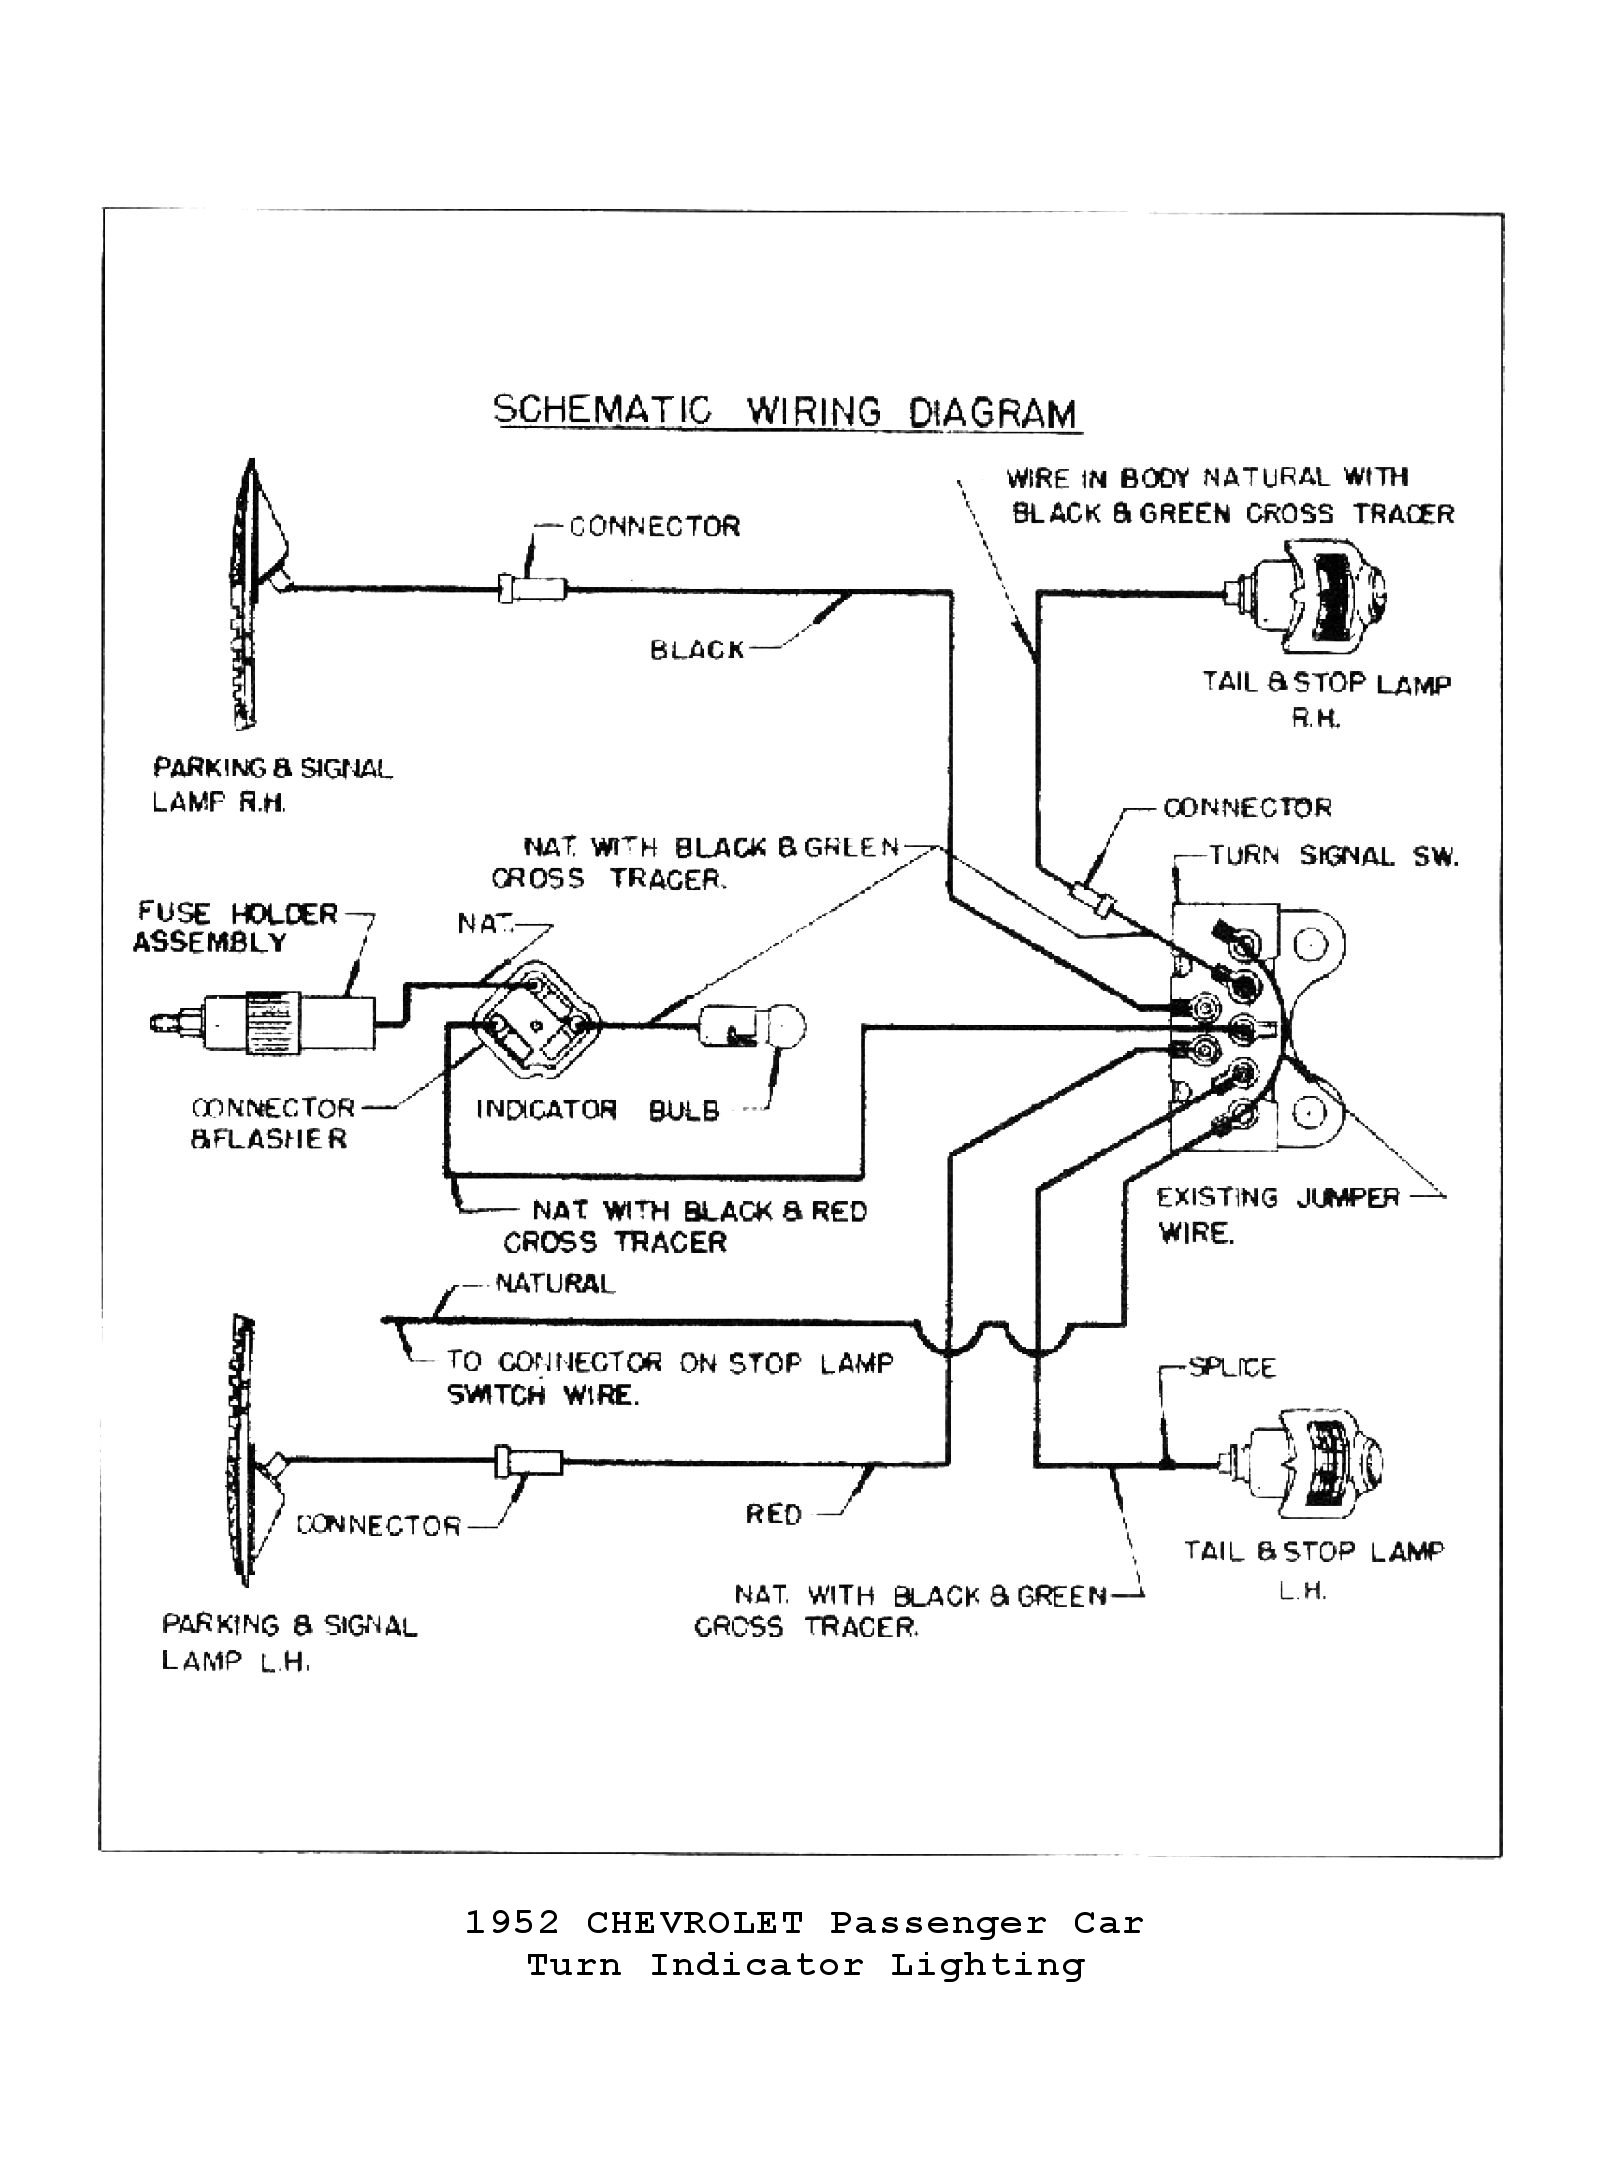 53 Buick Wiring Diagram Schematic Auto Electrical Autoloc Diagrams Svpro5 Chevy